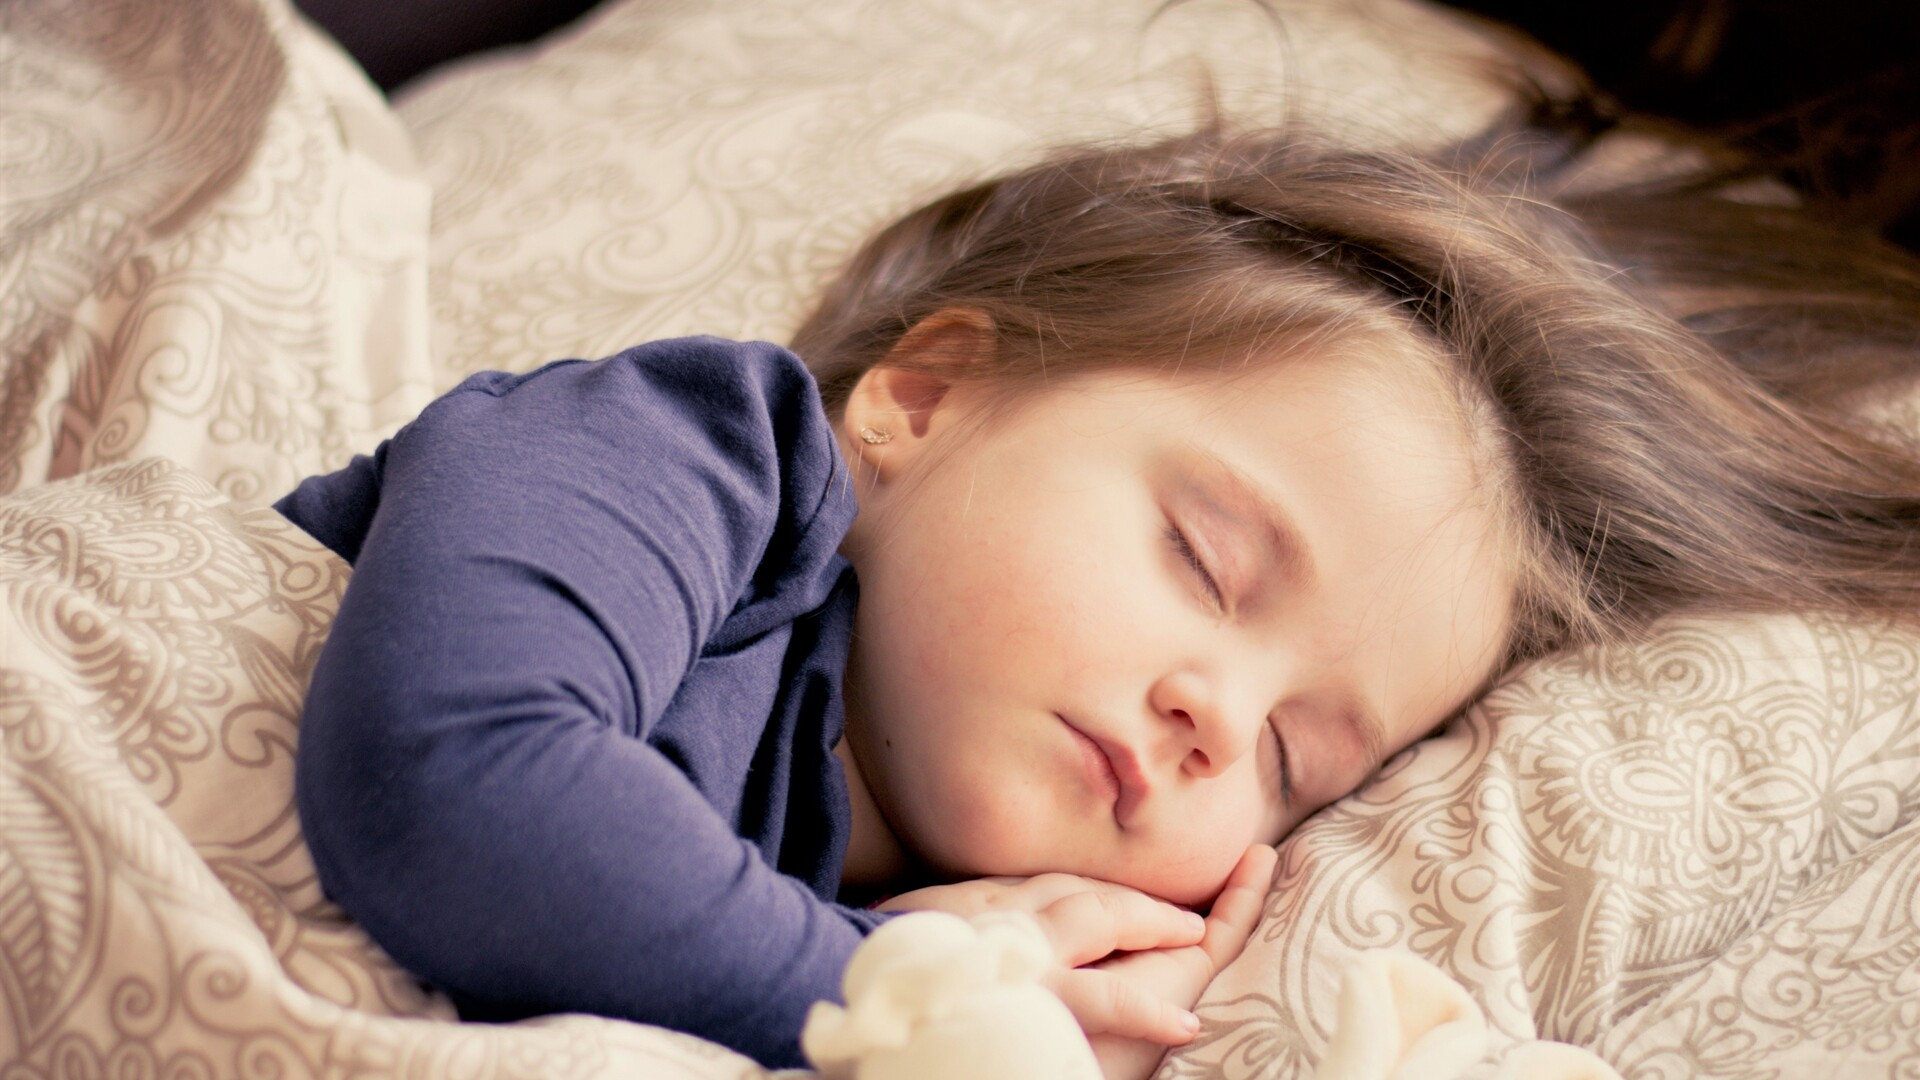 Cute Babies Sleeping Images: 1920x1080 Cute Child Sleeping Laptop Full HD 1080P HD 4k